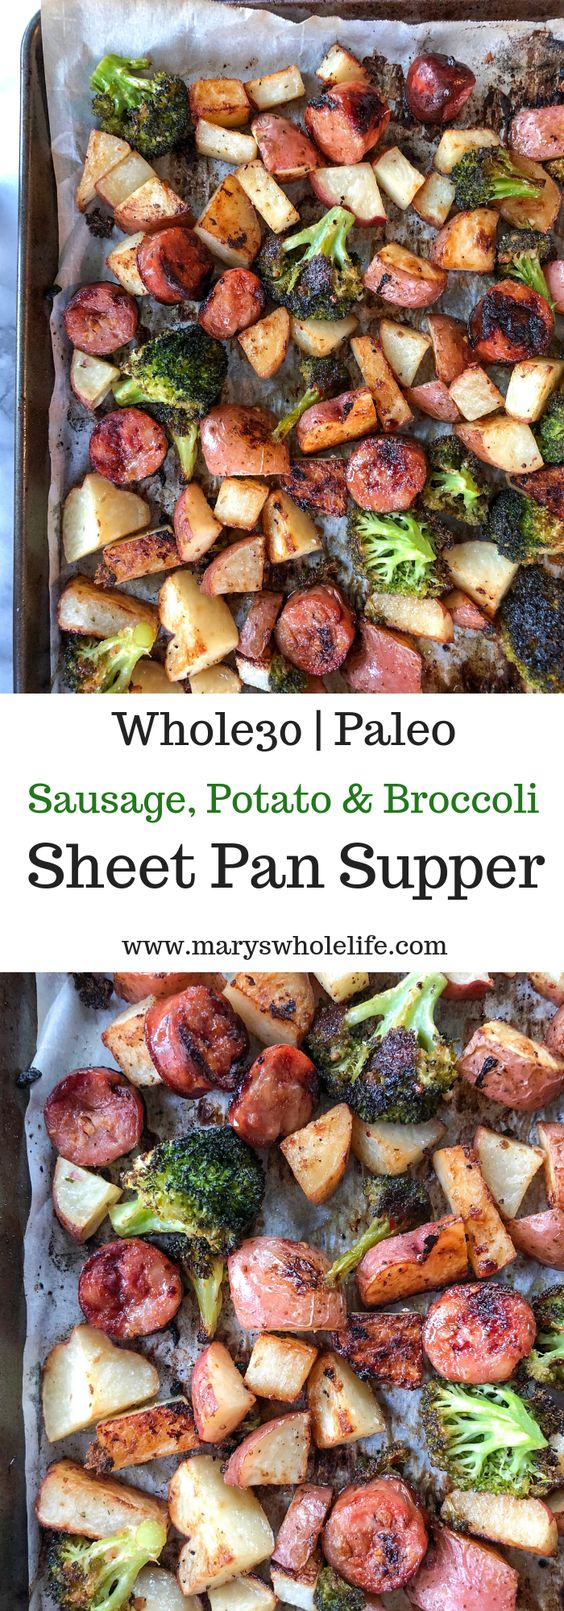 Sausage, Potato & Broccoli Sheet Pan Supper